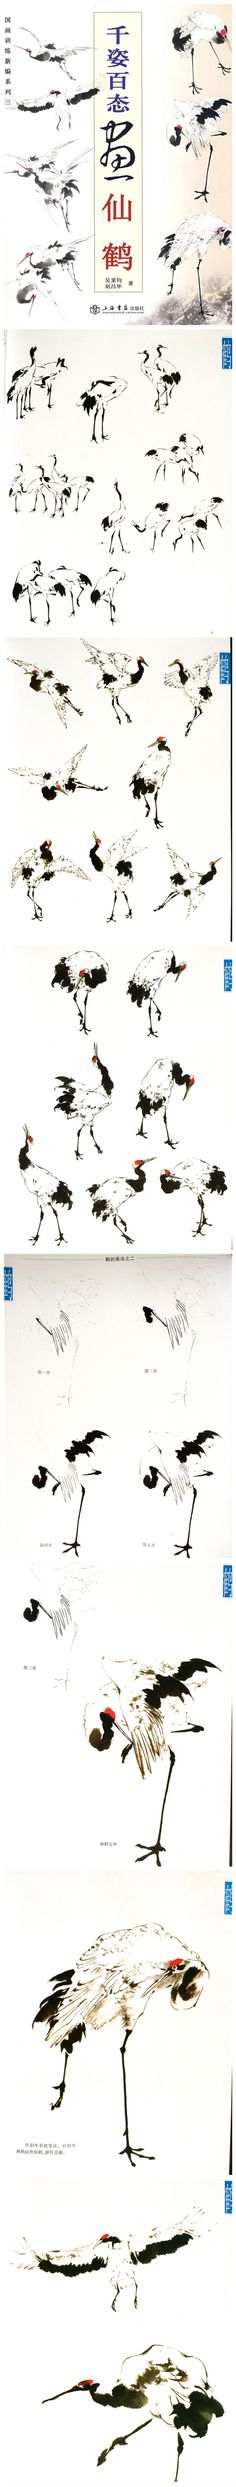 HH086 Sumi-e Painting Book- Crane [HH086] - $11.94 : hmay rice paper manufacturer for calligraphy, brush painting&Chinese painting